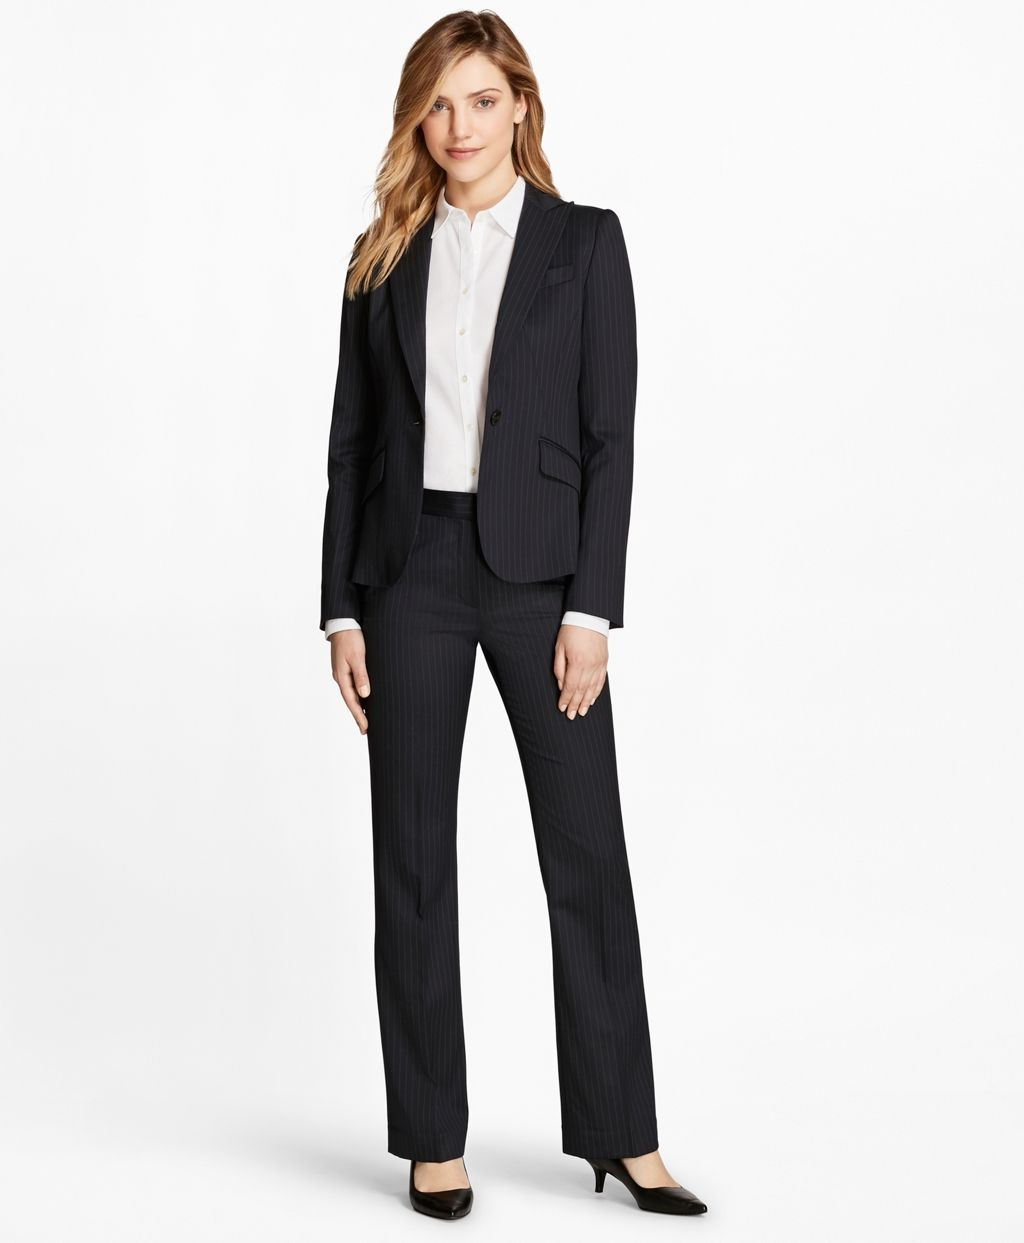 Brooks Brothers Suit Is An Example Of A Business Formal Outfit For The Business Professional Business Professional Attire Professional Dresses Business Dresses